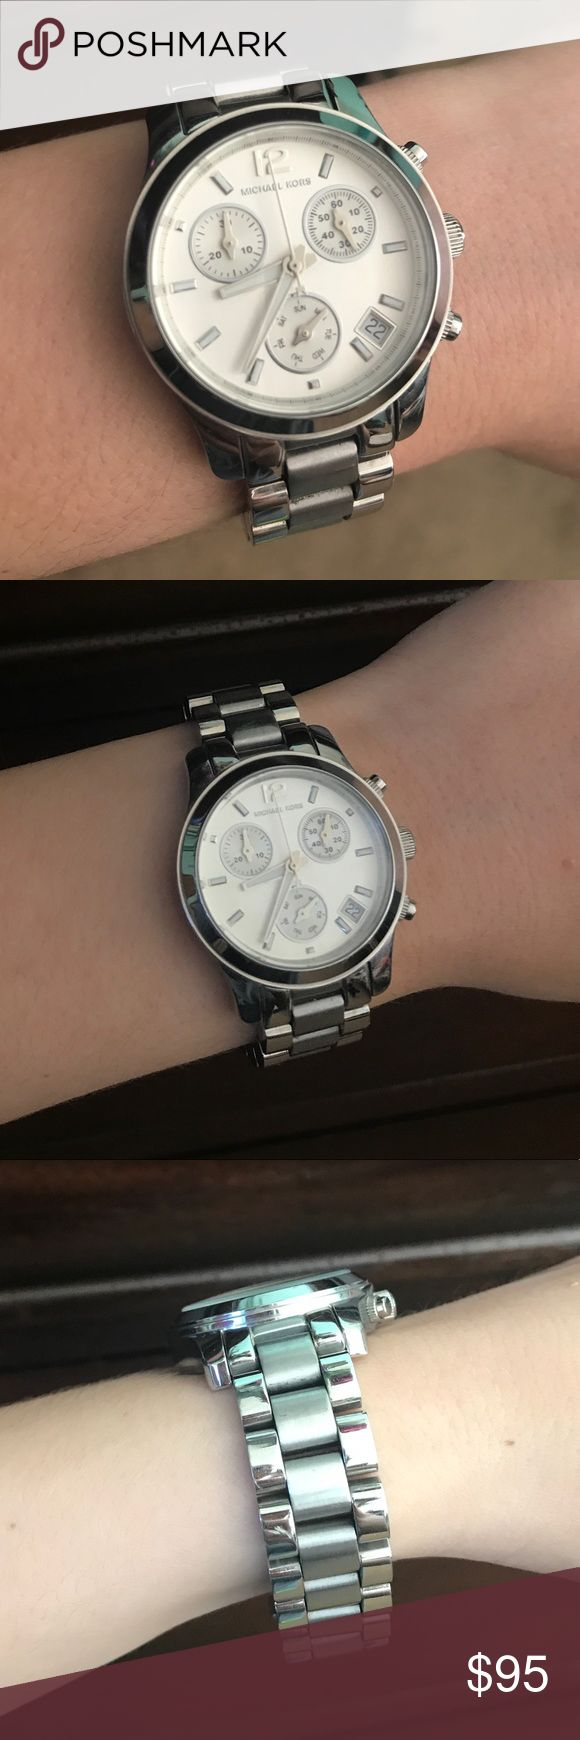 Michael Kors Silver Watch MK-5428 This listing is for an authentic Michael Kors silver watch in the style MK-5428. It is in good condition. There is an almost unnoticeable scratch on the face and very little wear on the silver band. It works perfectly! It has been sized so it fits nicely on a smaller wrist. Please make an offer if interested! :) Michael Kors Accessories Watches